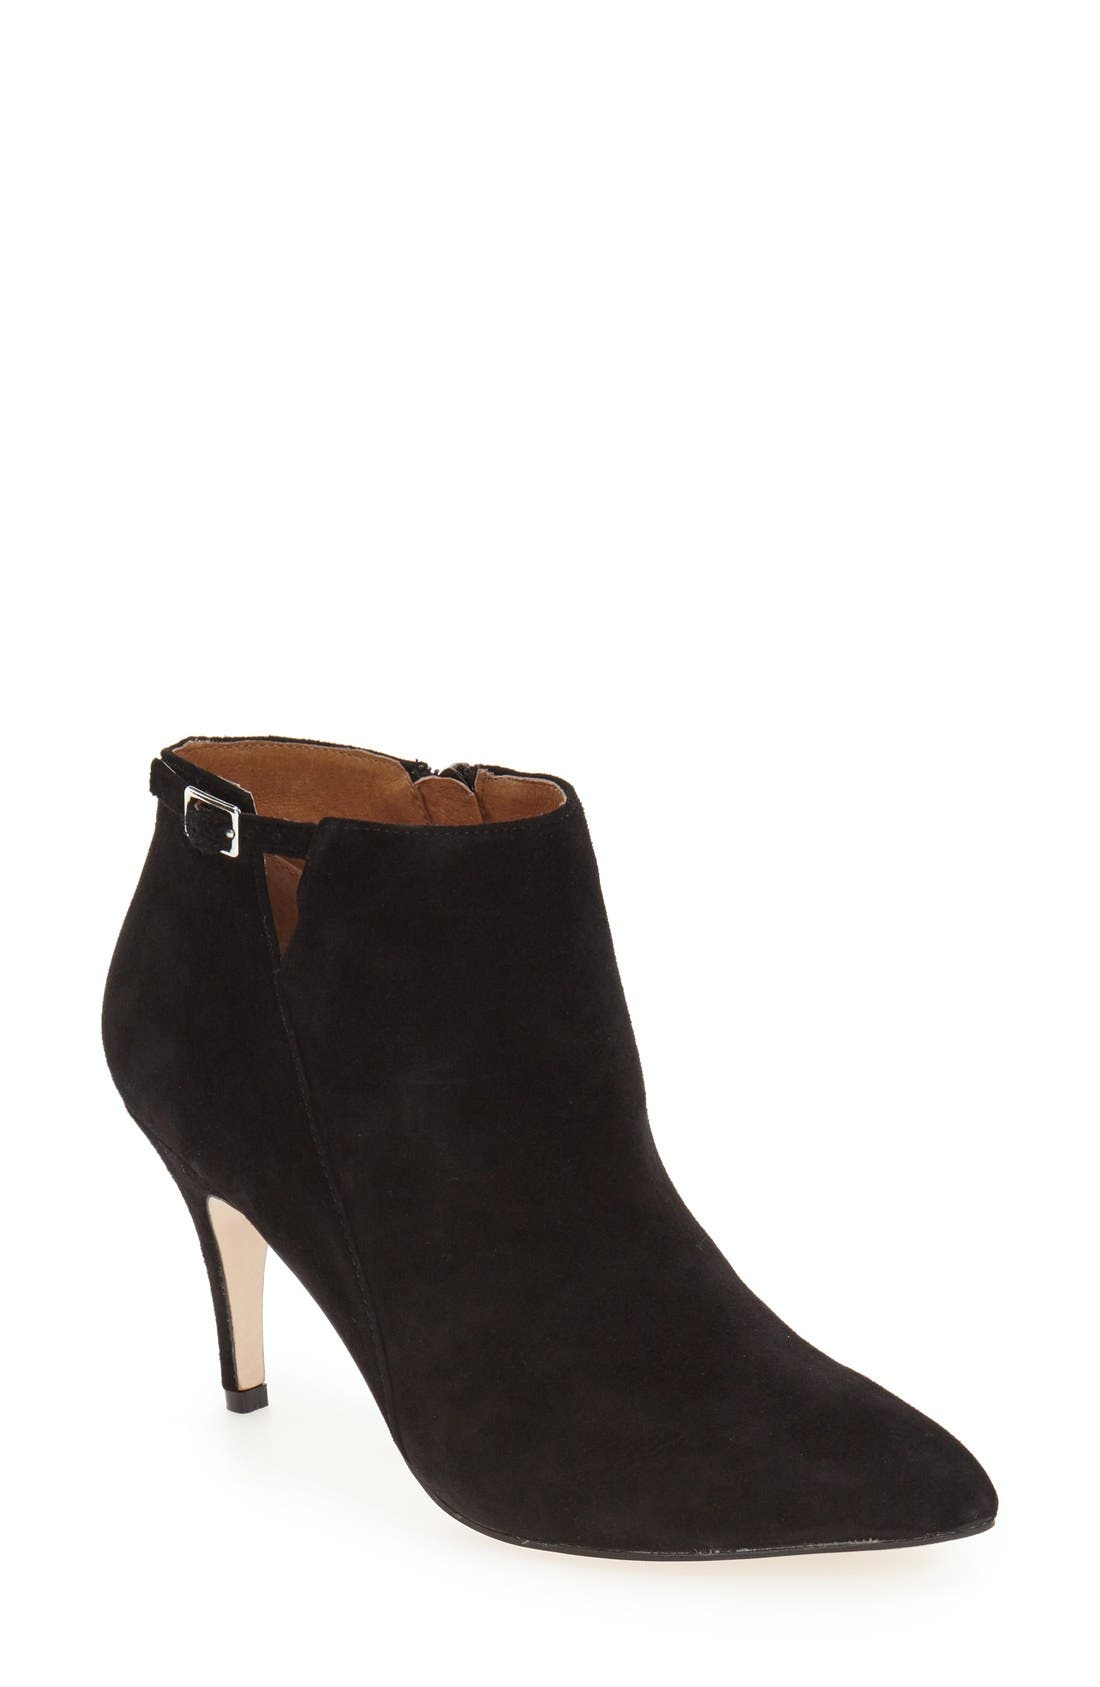 Main Image - Corso Como 'Roster' Pointy Toe Bootie (Women)